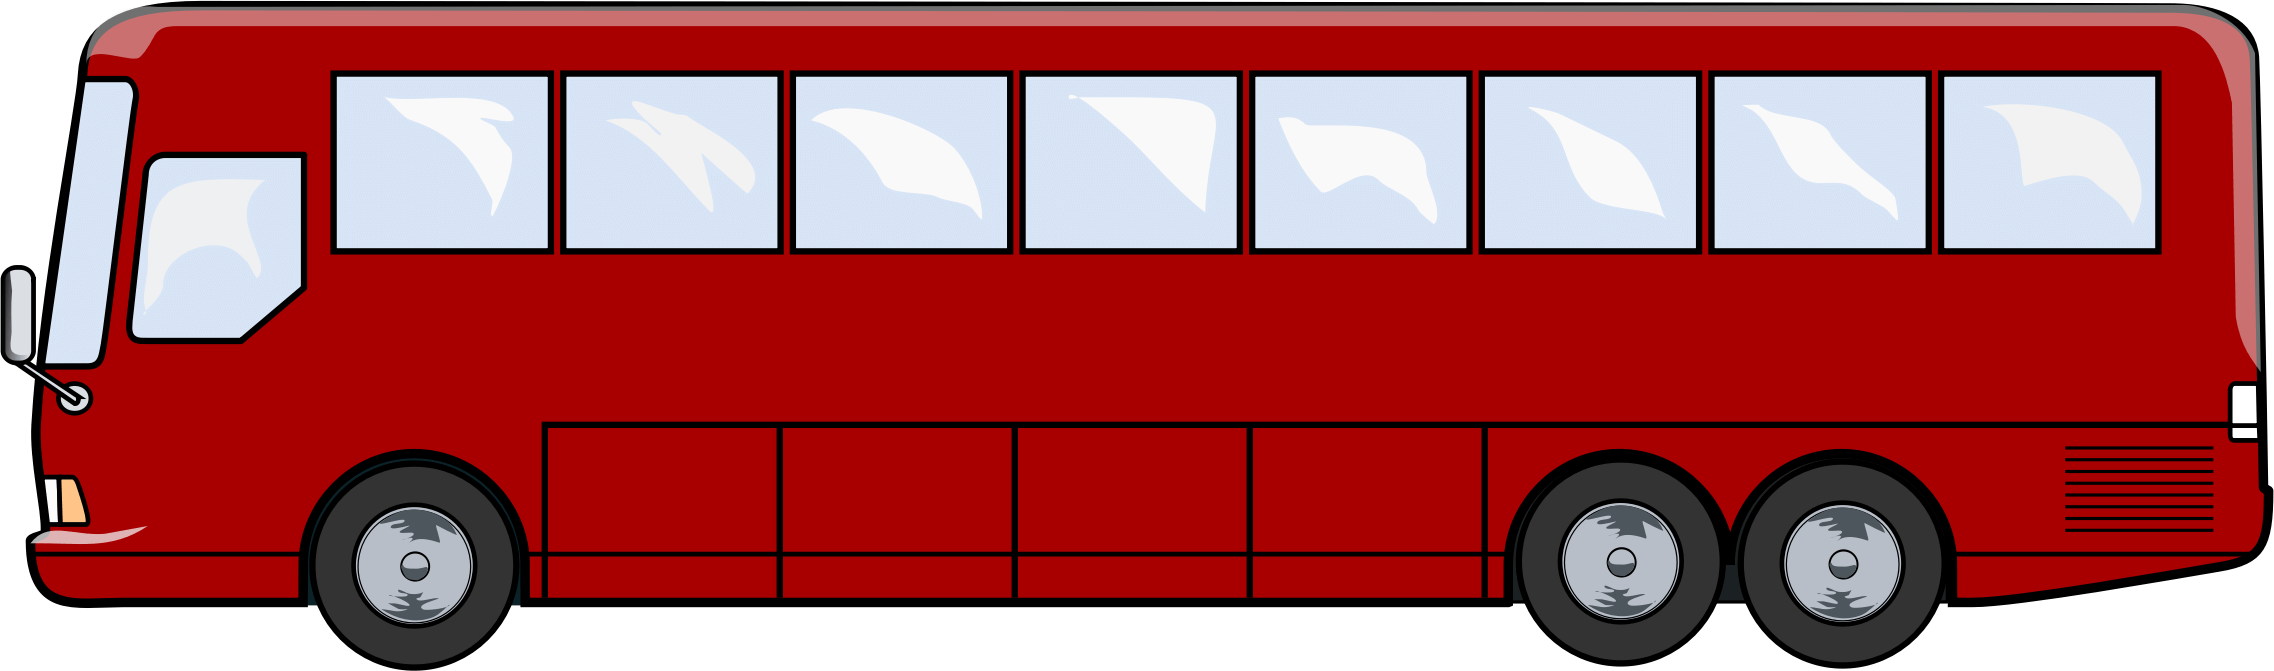 Bus clipart rectangle. Free activity cliparts download